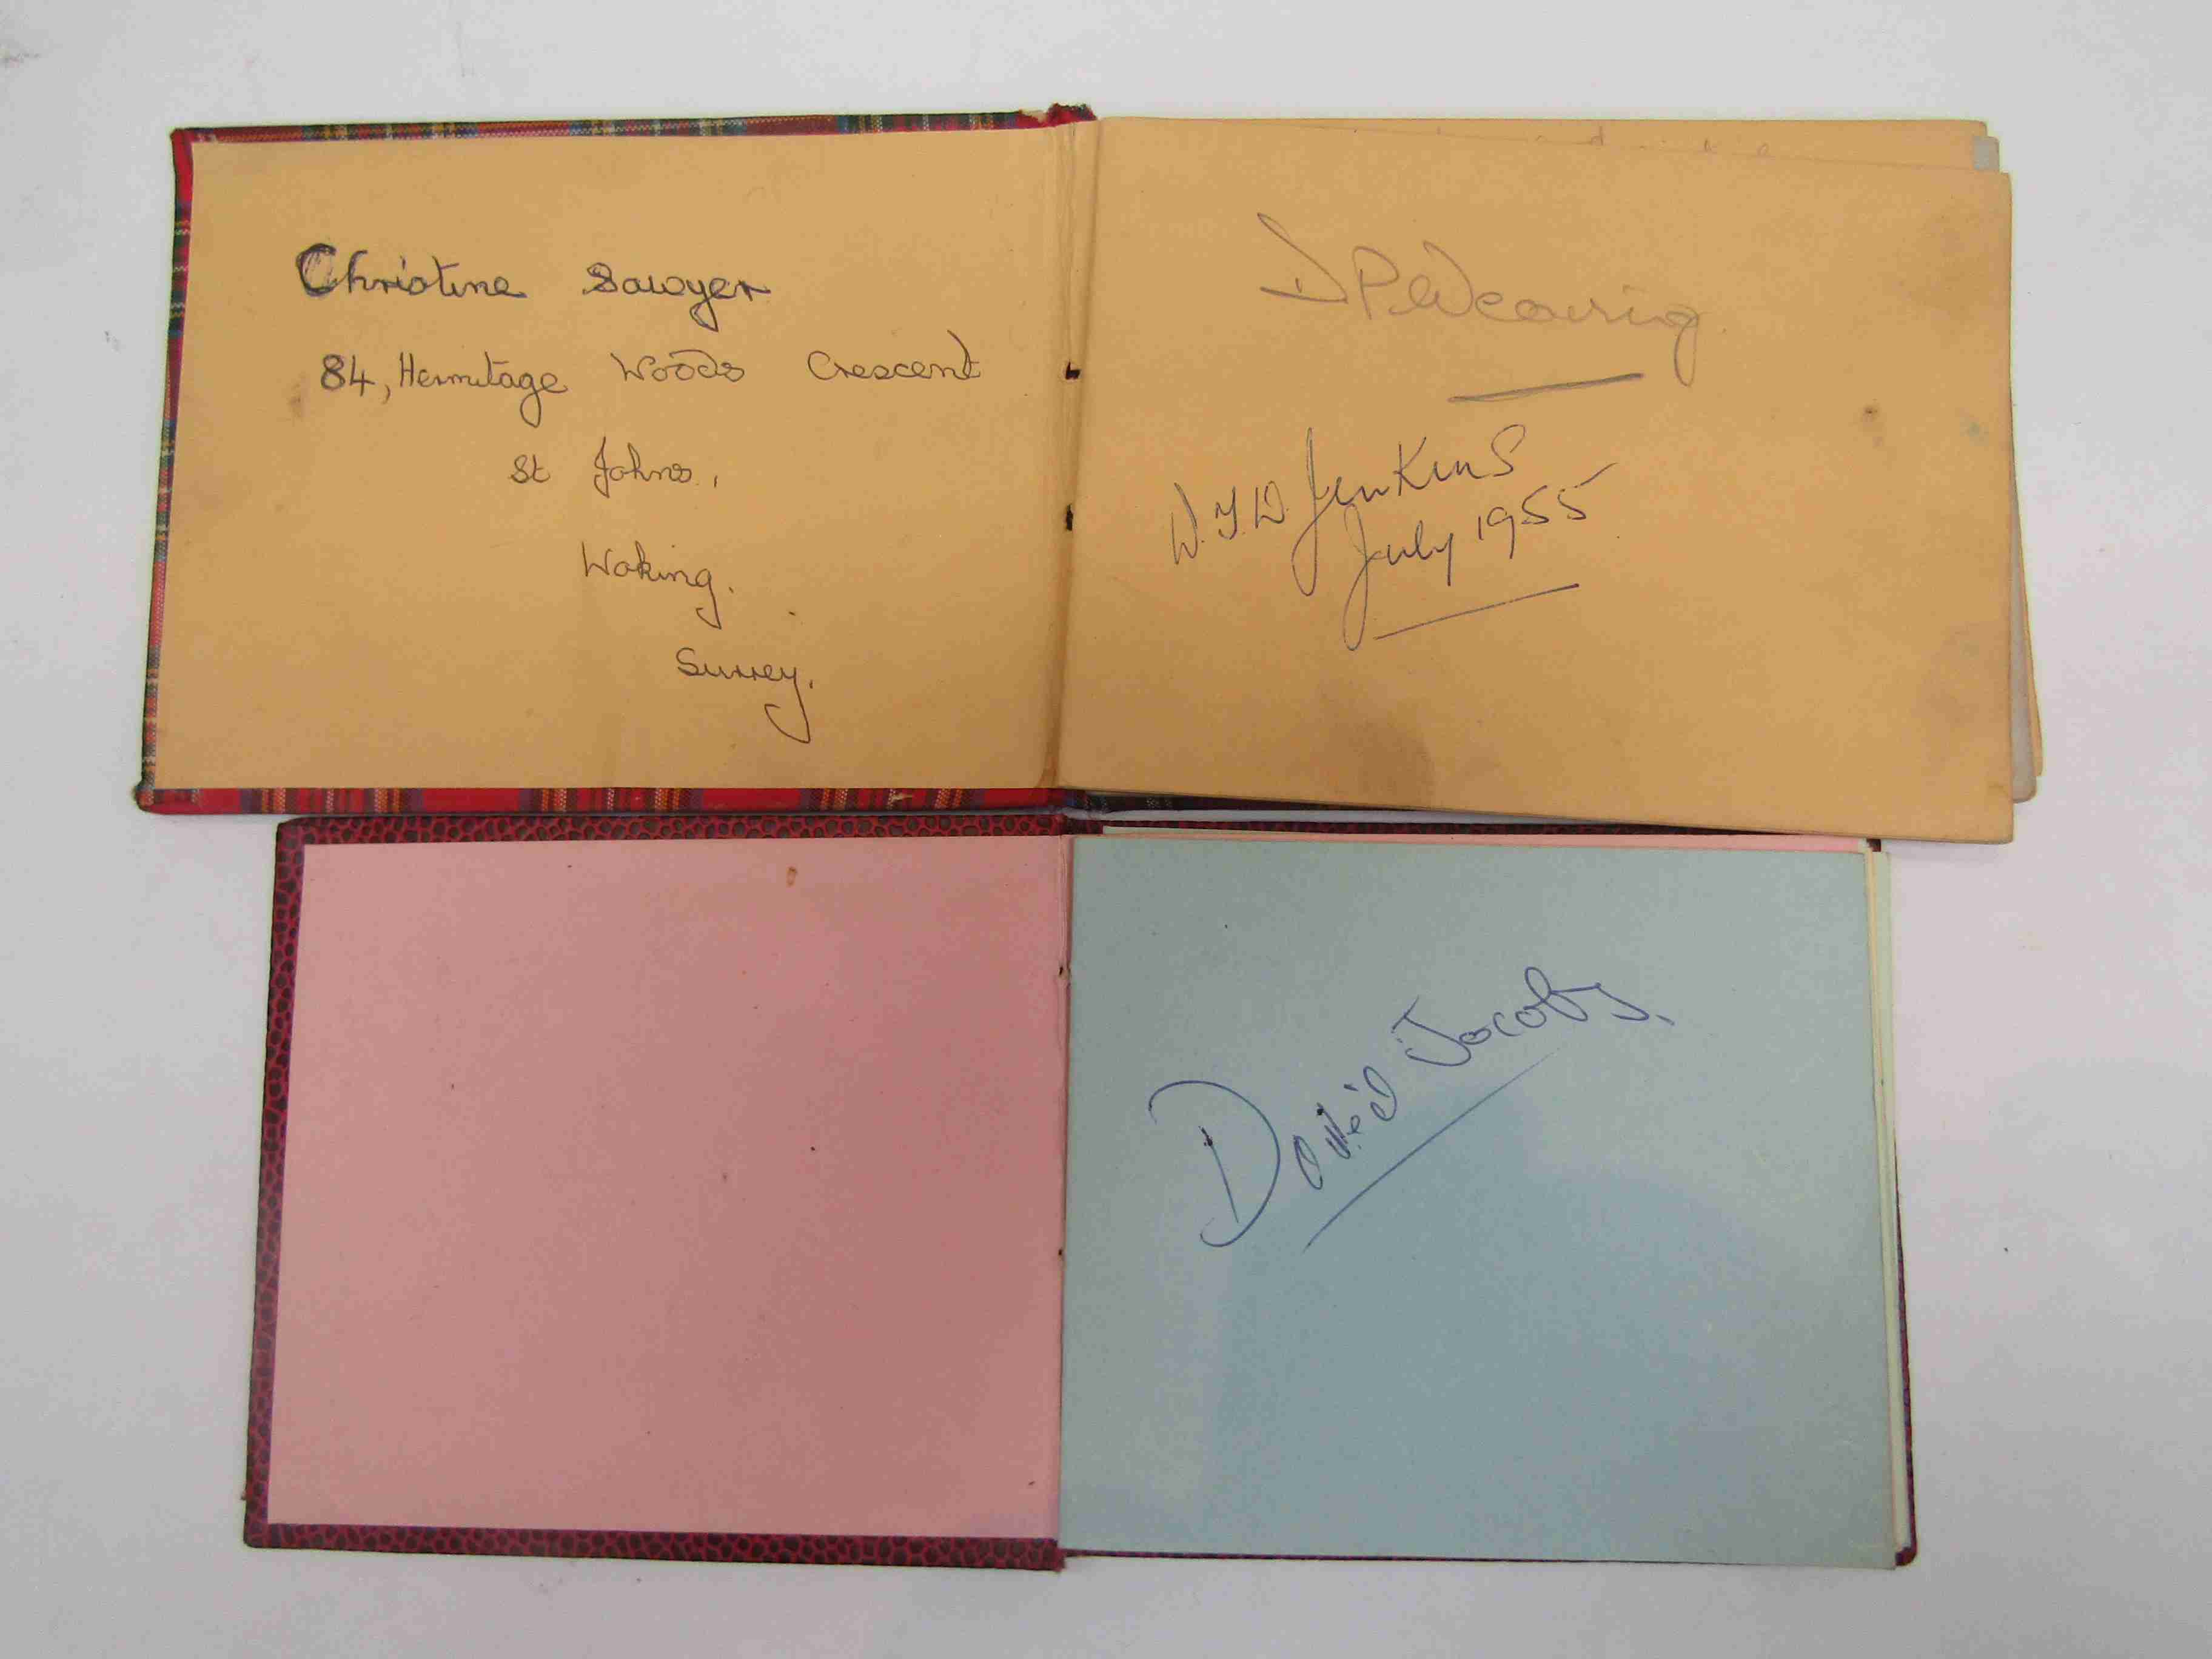 Two 1950s/60s autograph books containing autographs by Benny Hill, Honor Blackman, Barbara Shelley, - Image 7 of 34